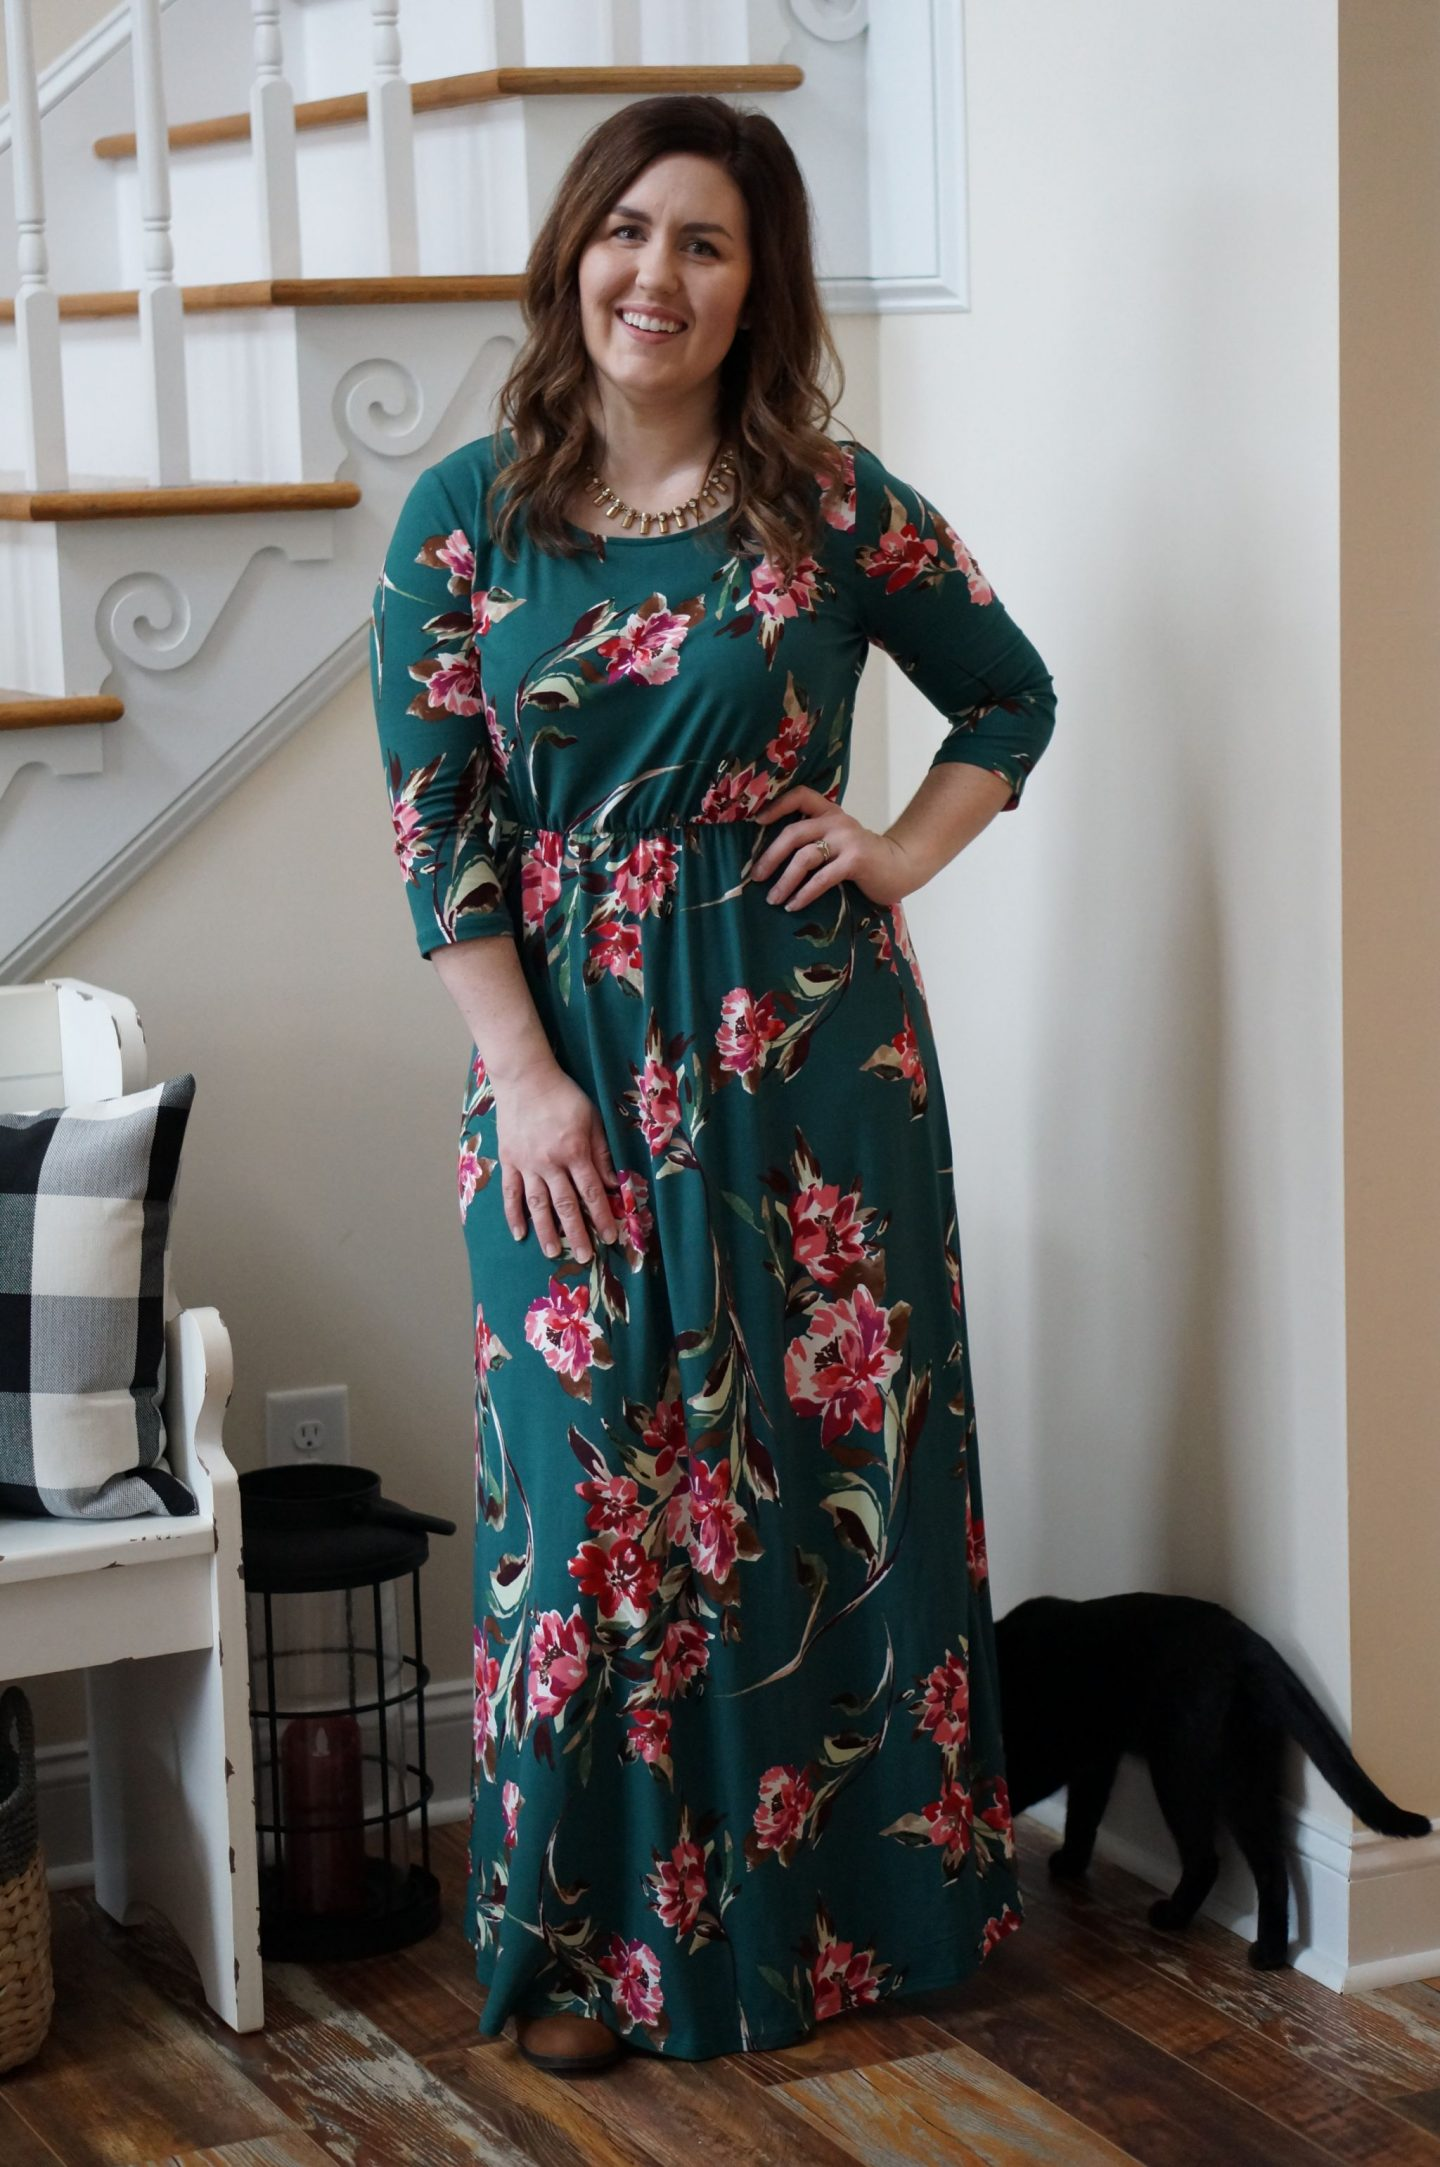 North Carolina style blogger Rebecca Lately shares how she styles her floral maxi dress with a gold bar necklace from Happiness Boutique!